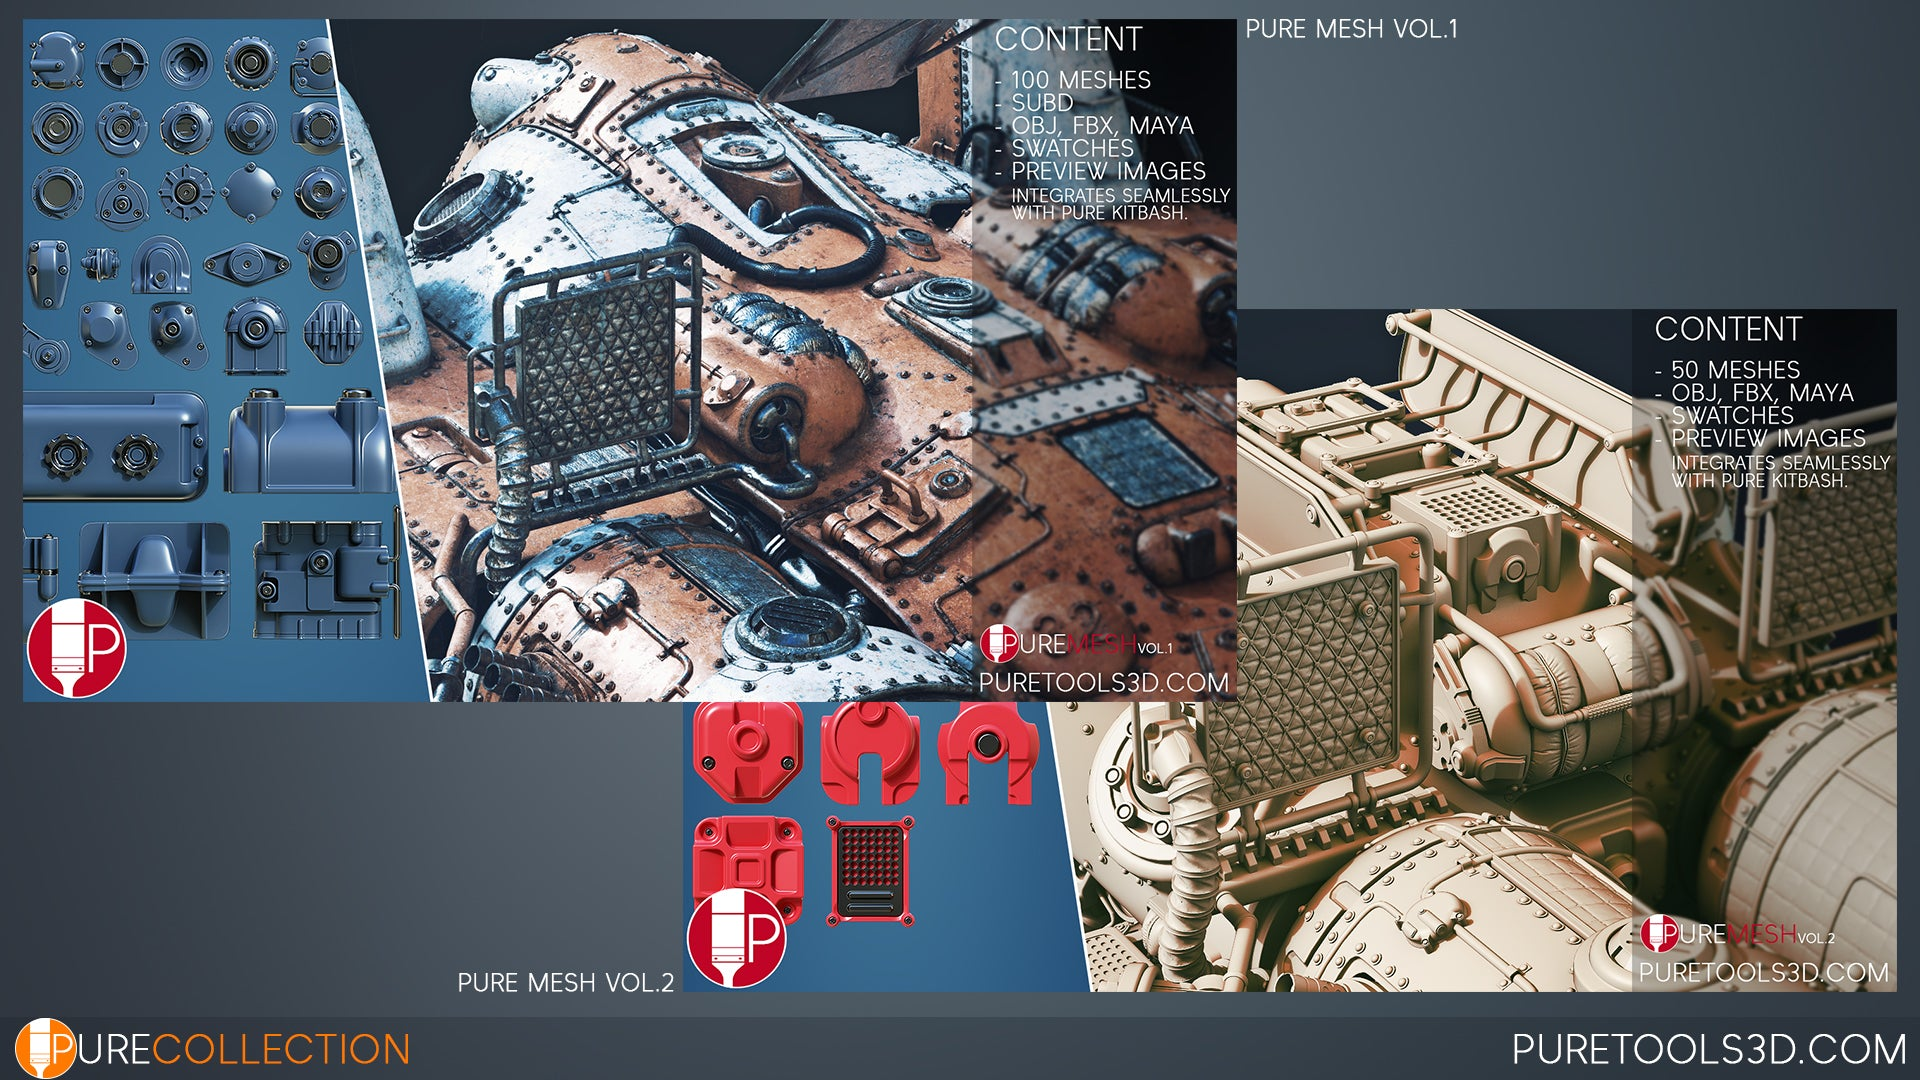 Pure Collection Vol. 1 Preview of Pure Mesh Vol. 1 and Vol. 2